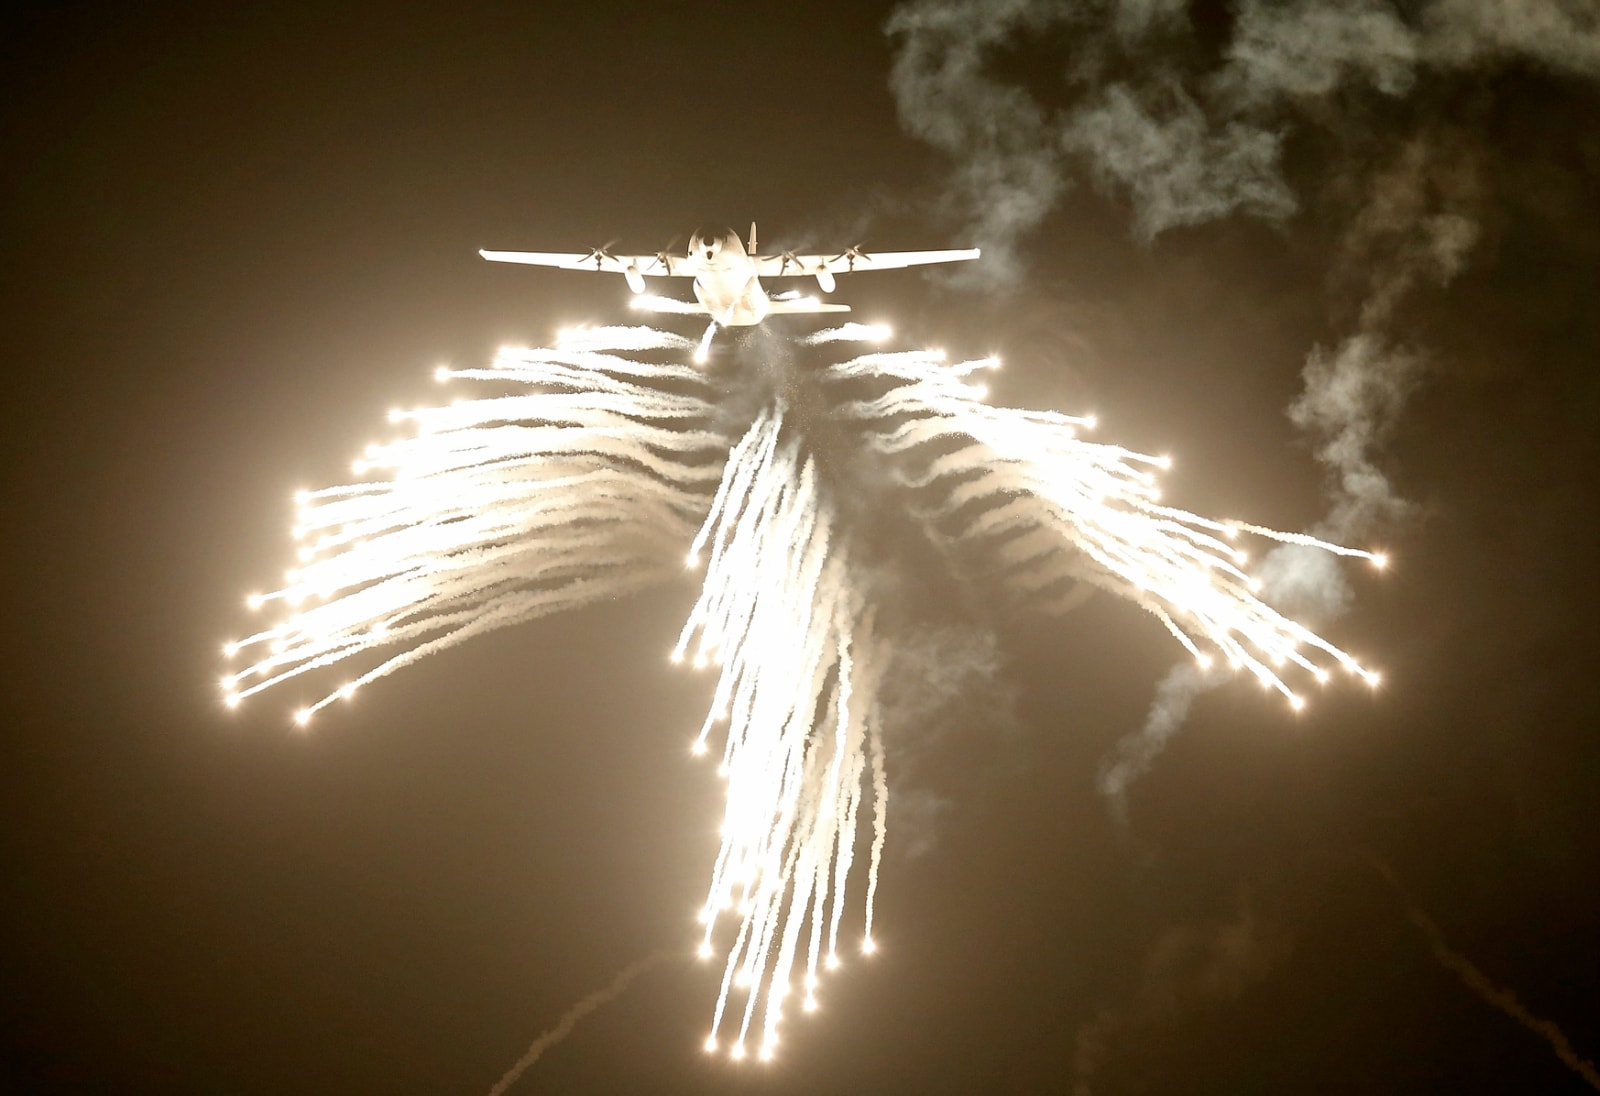 A US-made C-130J Hercules aircraft of the Indian Air Force (IAF) fires flares during